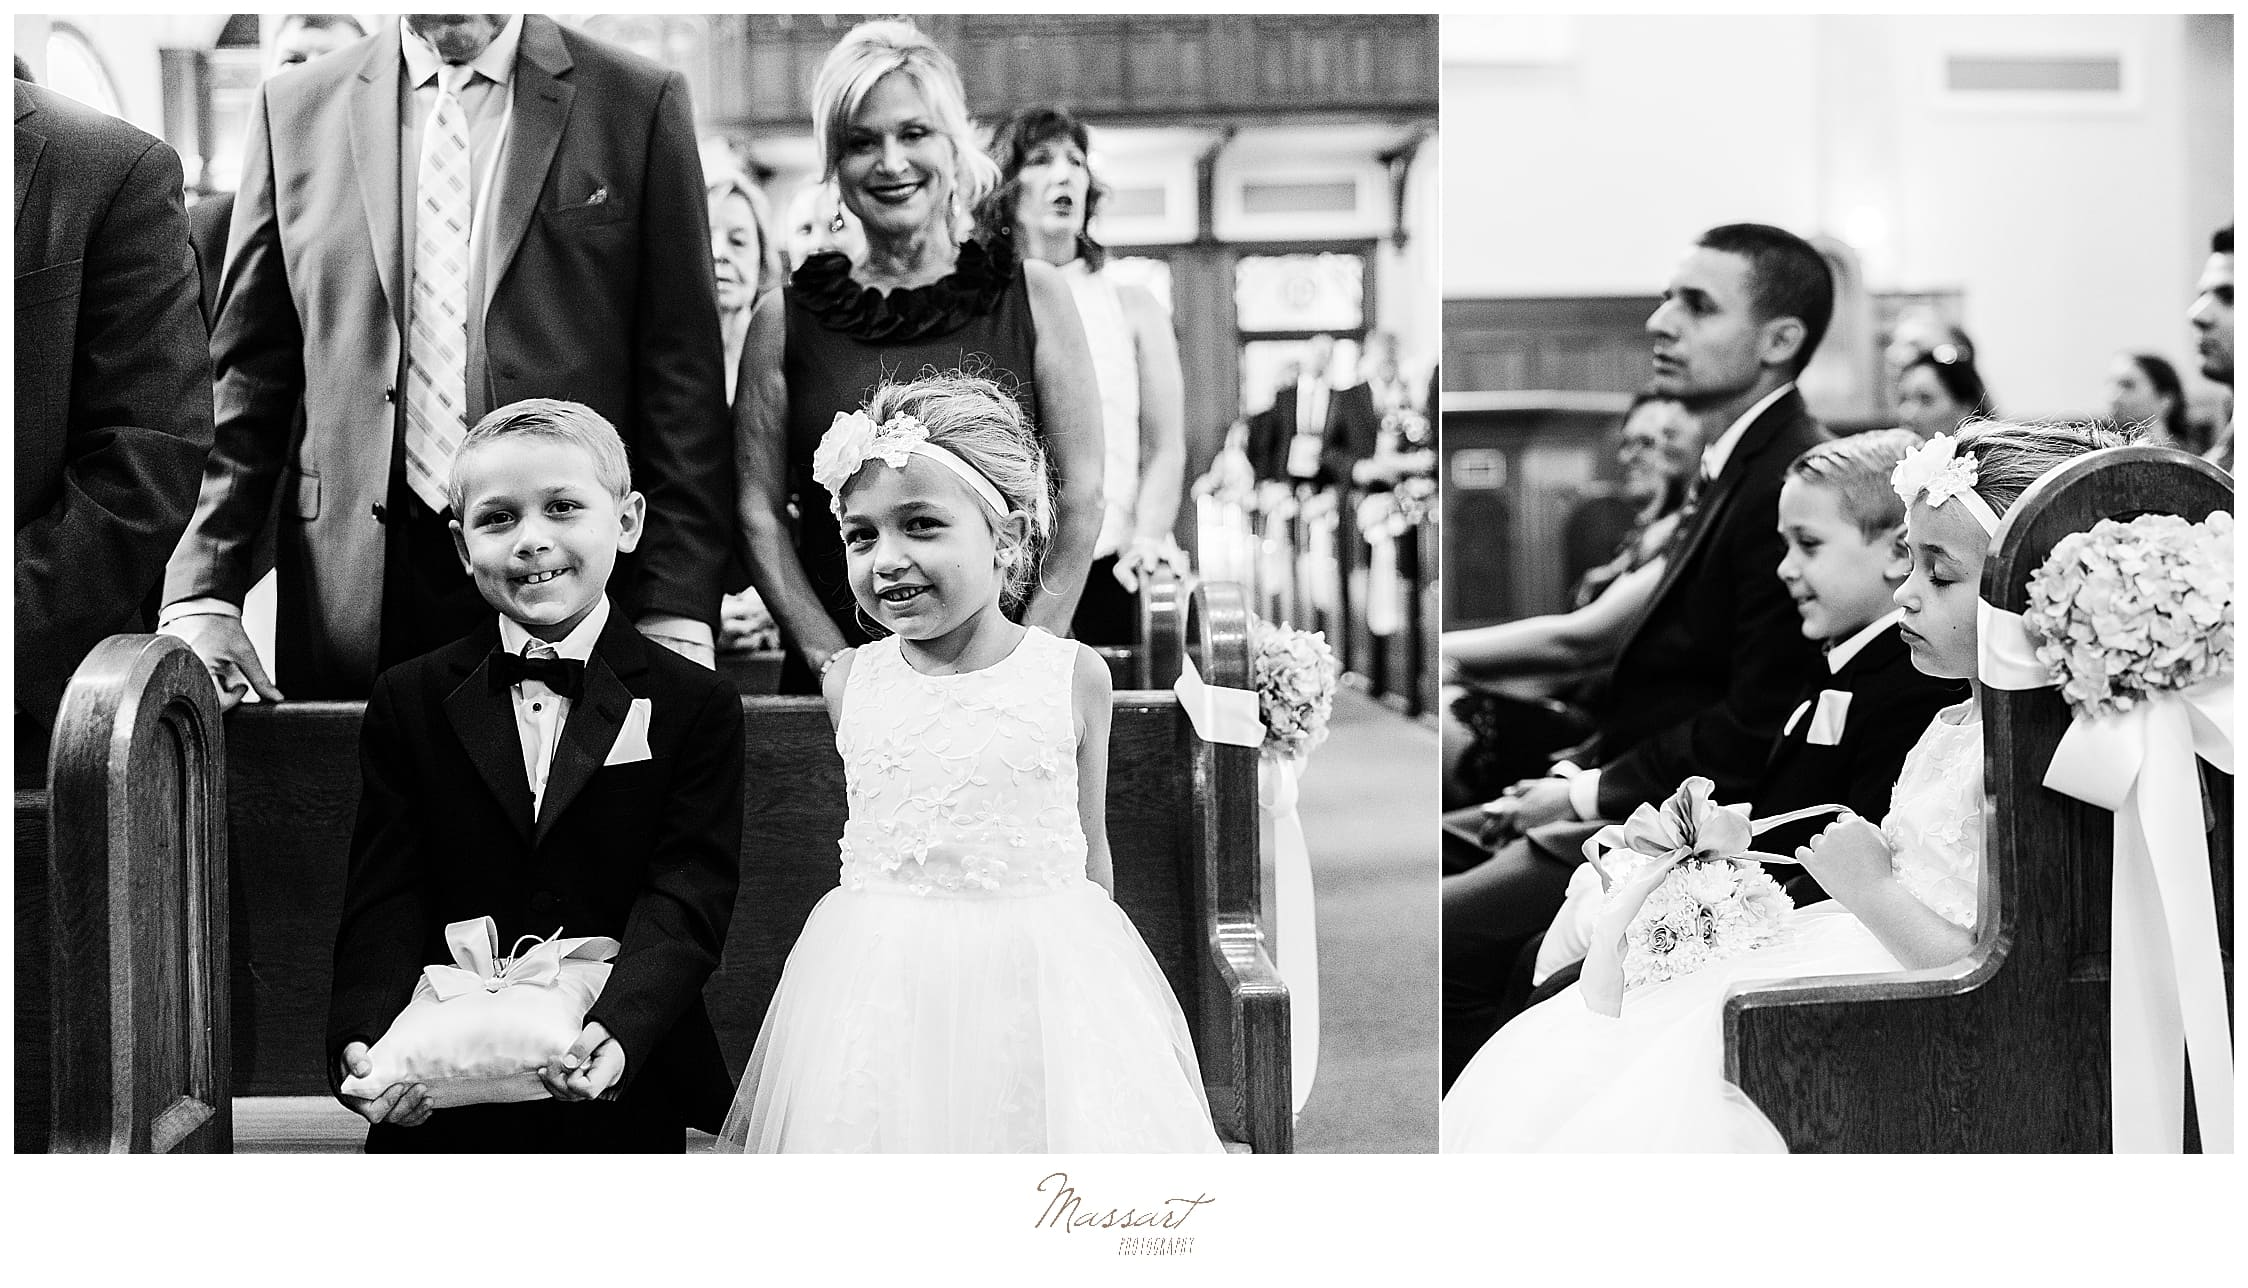 flower girl and ring bearer in church photographed by wedding photographers Massart Photography